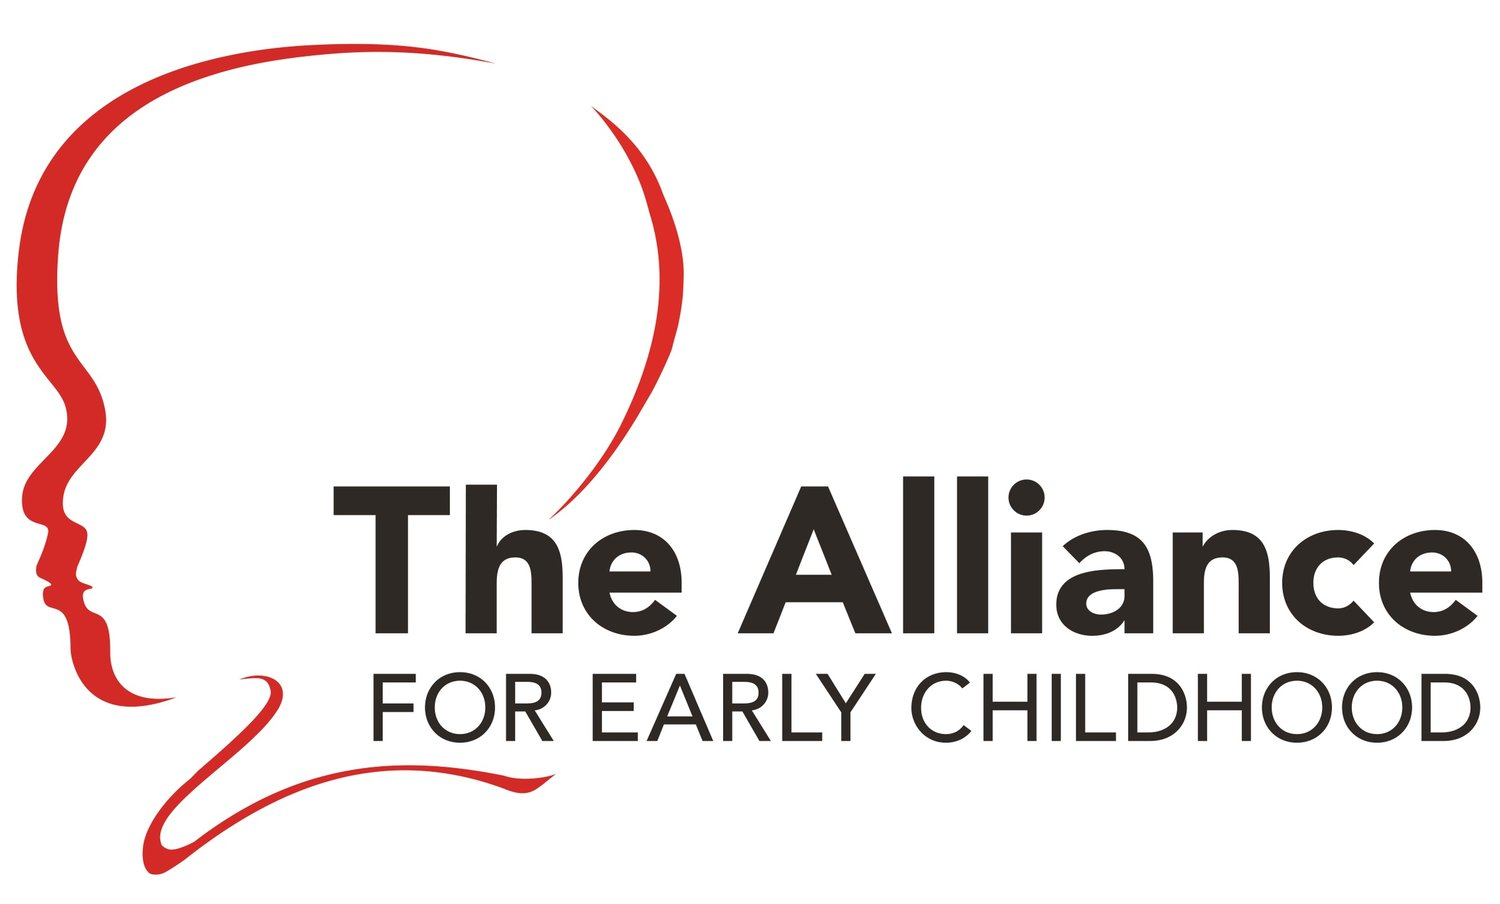 The Alliance For Early Childhood